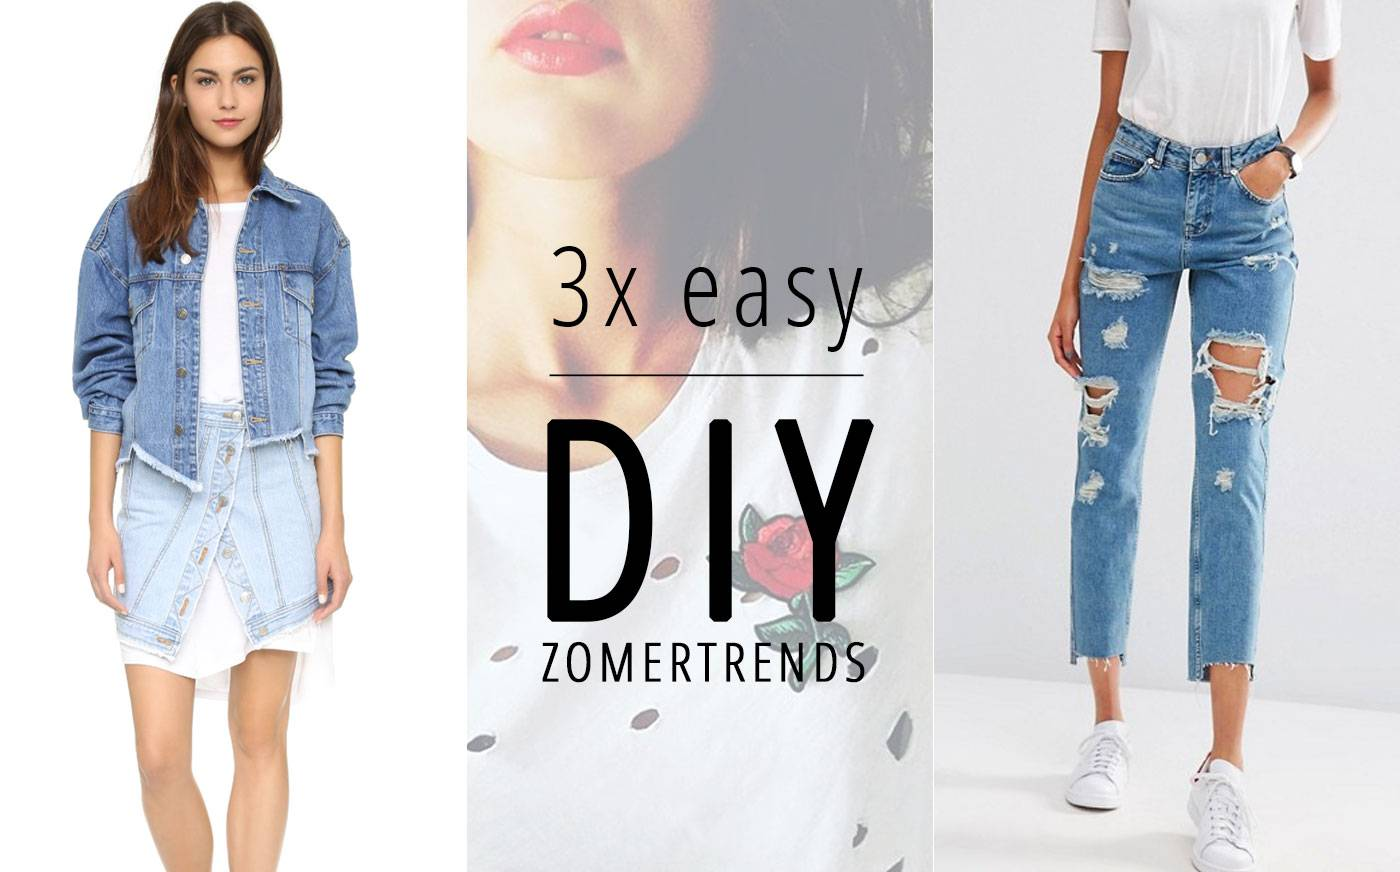 DIY Summertrends